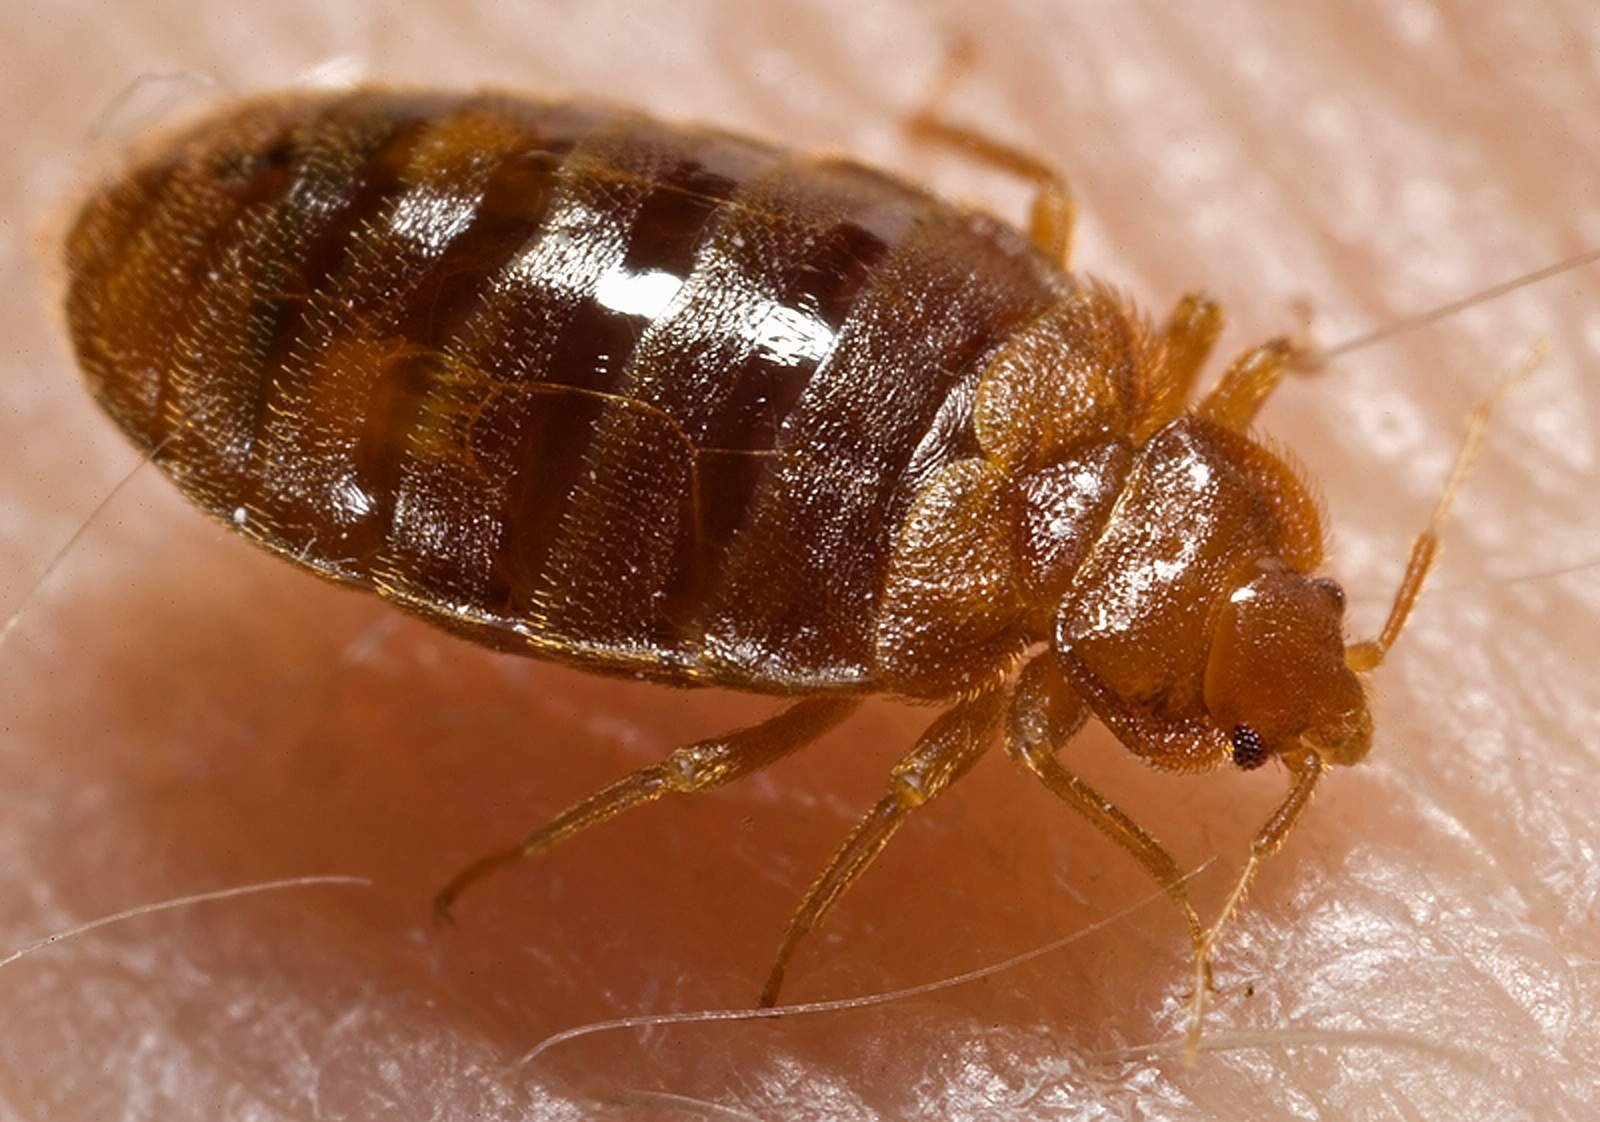 Cities rank on Orkin's list of top 50 cities for bed bugs